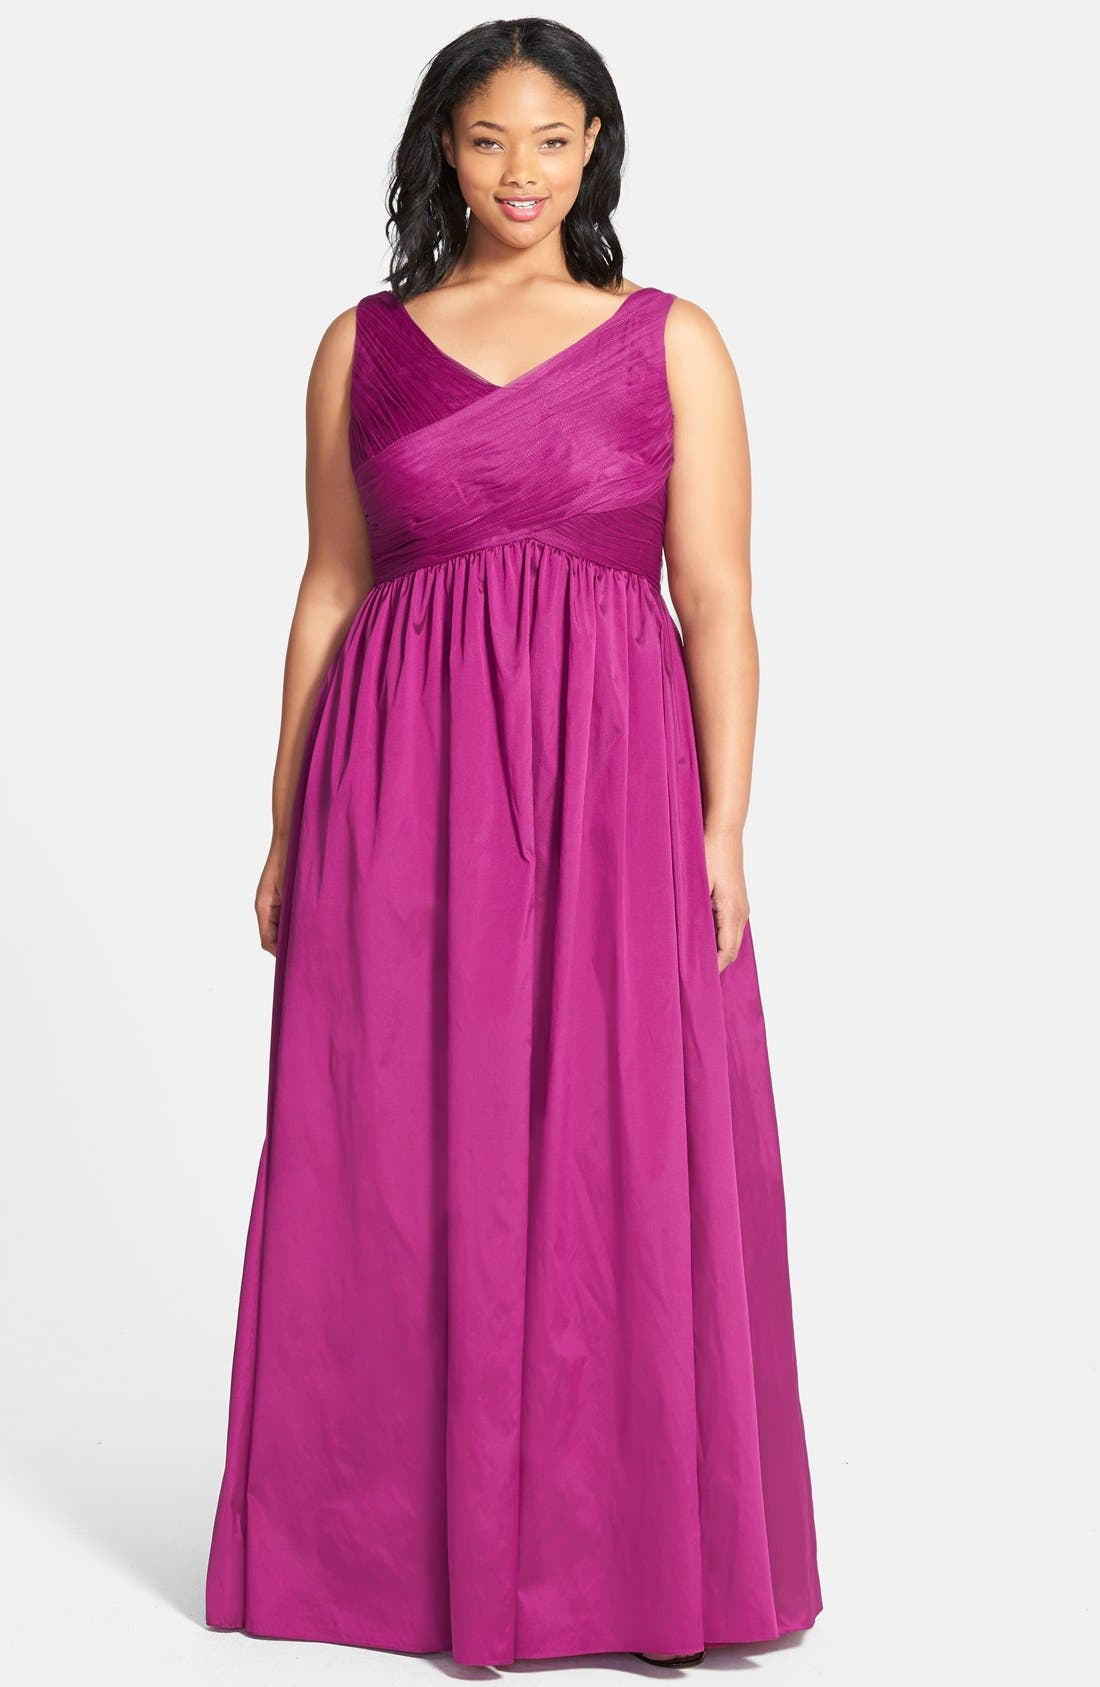 Alternate Image 1 Selected - Adrianna Papell Sleeveless Taffeta & Tulle Gown (Plus Size)